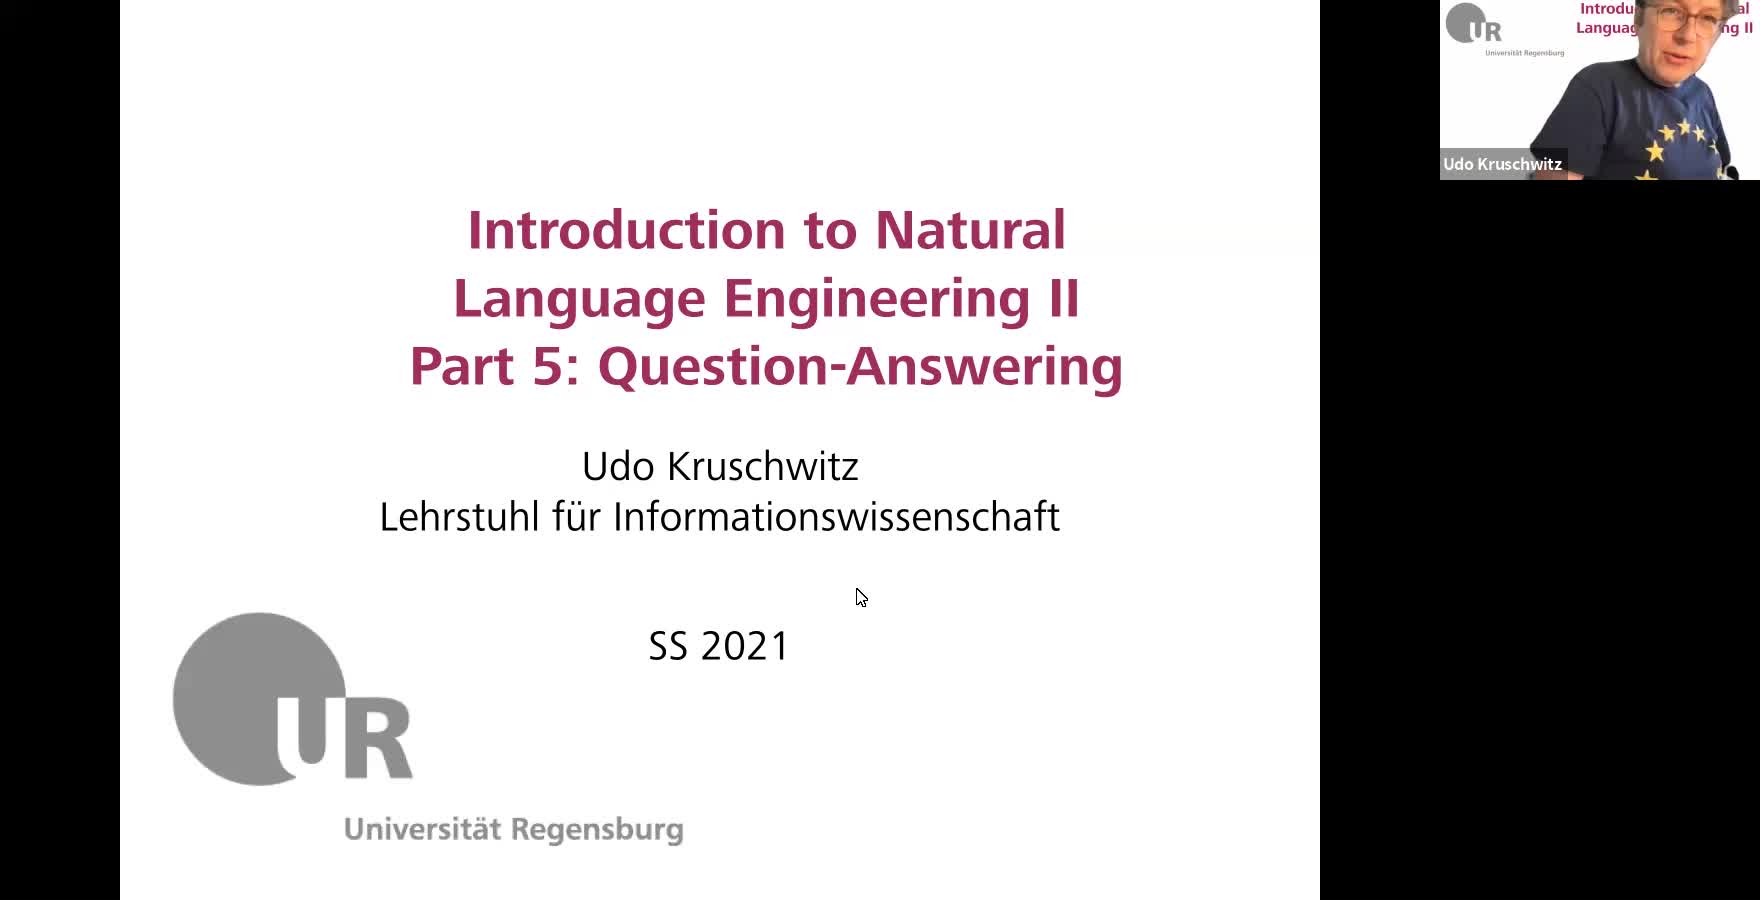 Introduction to Natural Language Engineering 2 / Informationslinguistik 2 - Lecture 7 (Question-answering systems II)